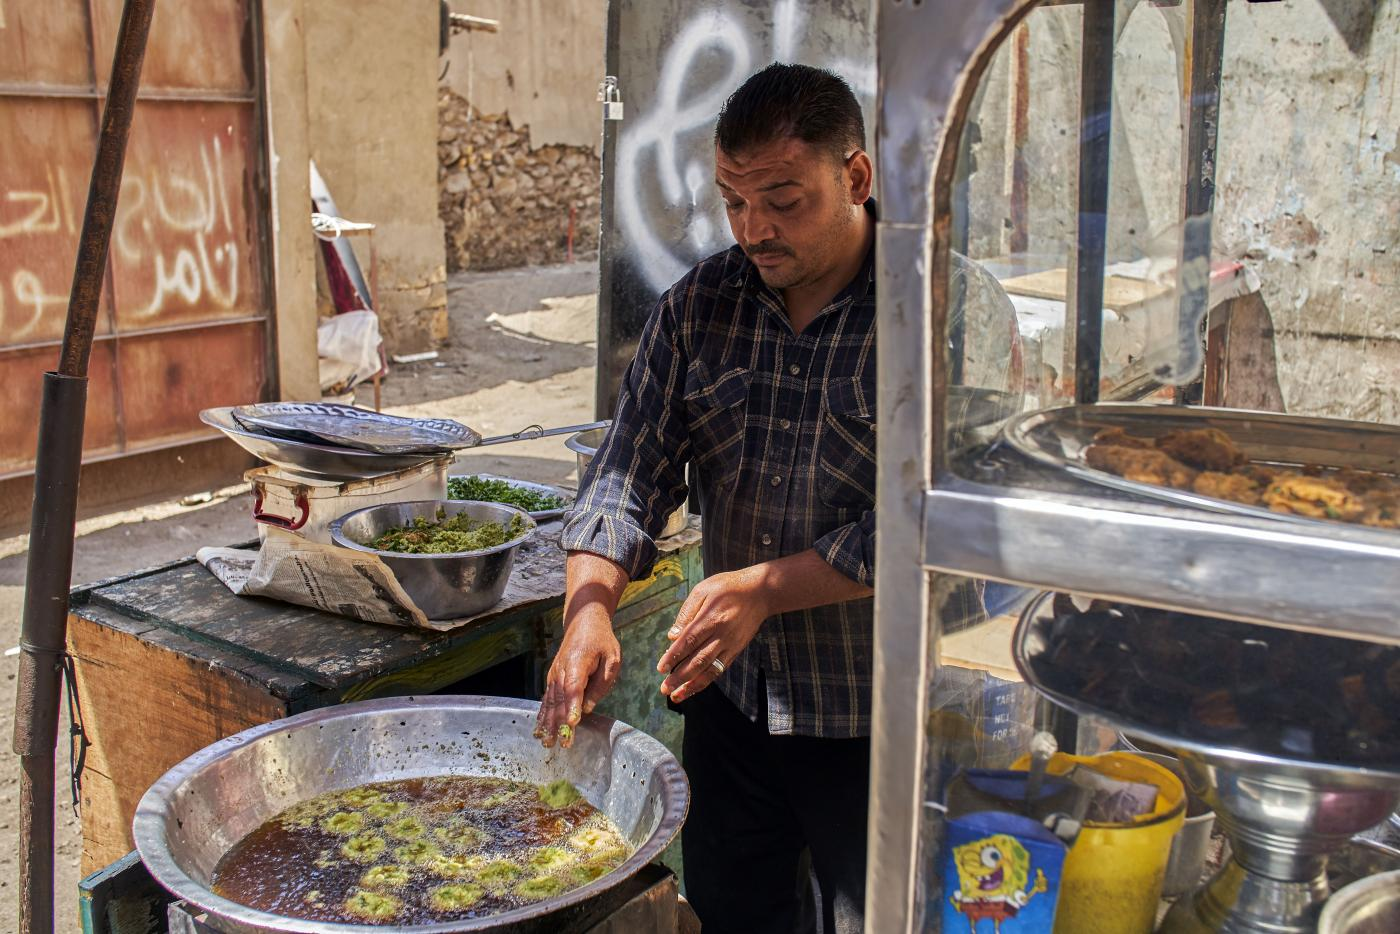 Sayed El Deeb, a vendor on Abd Al Aziz Gaweash street, whose family has been making taameya (falafel) for 50 years, in downtown Cairo, 10 April 2019 (MEE/Hamada Elrasam)